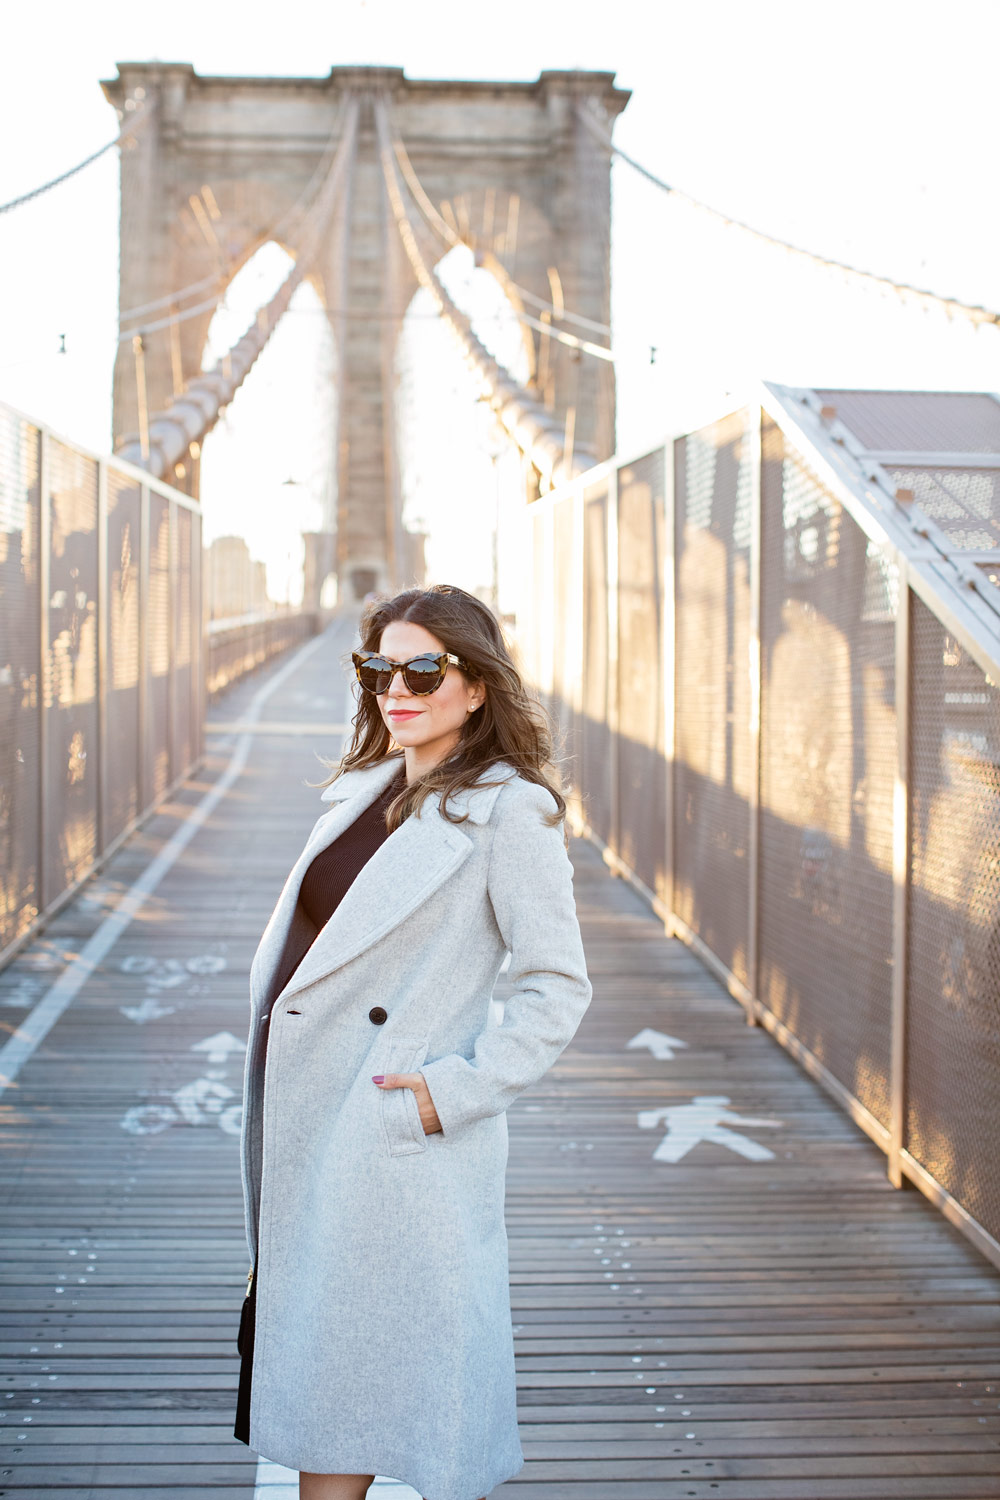 brooklyn-bridge-club-monaco-grey-wool-coat-black-dress-chloe-drew-bag-schutz-shoes-booties-new-york-city-corporate-catwalk-nyc-fashion-blogger-7